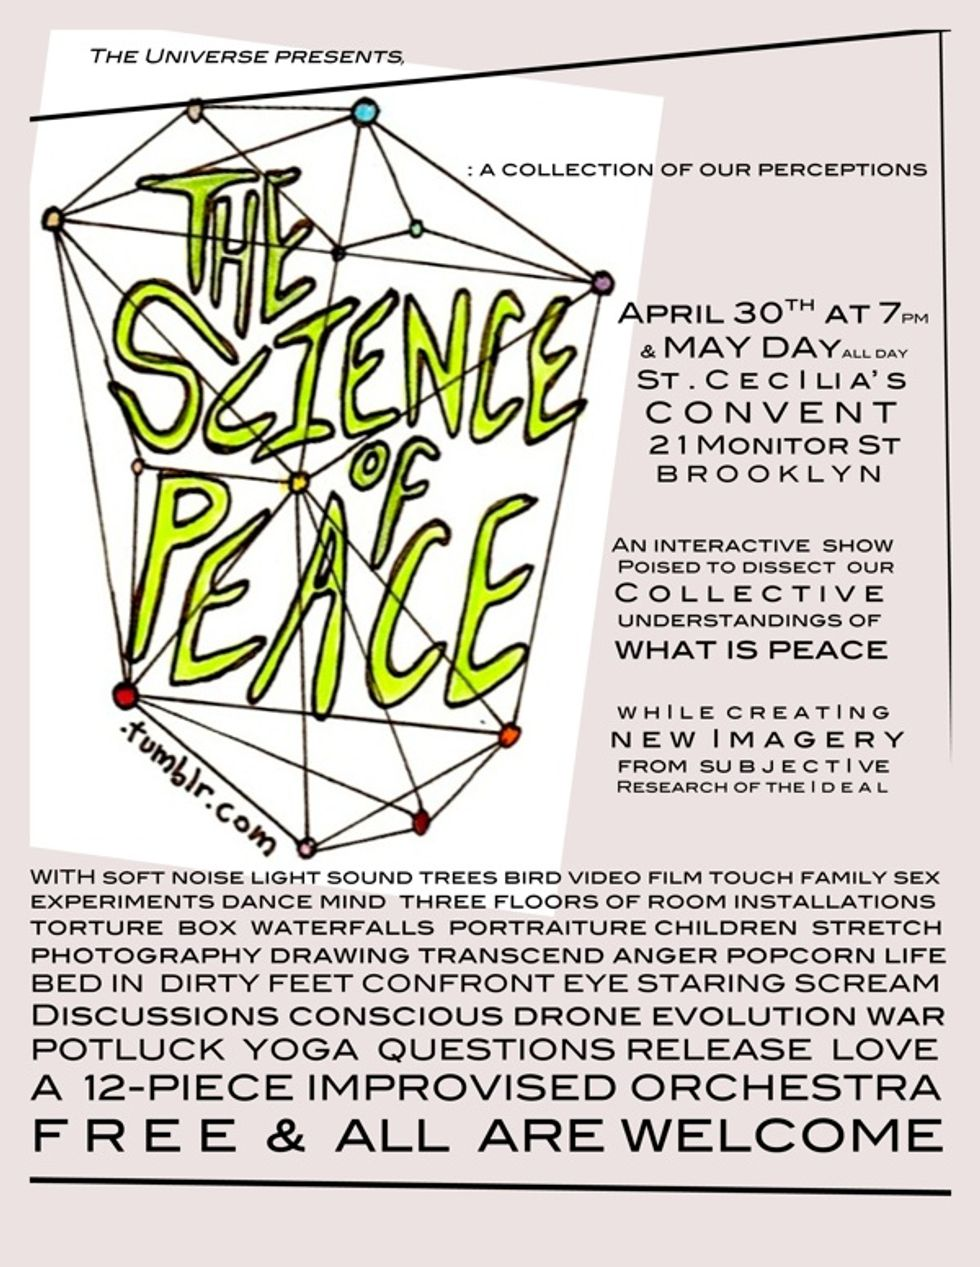 Hipsters for Peace -- Next Weekend!